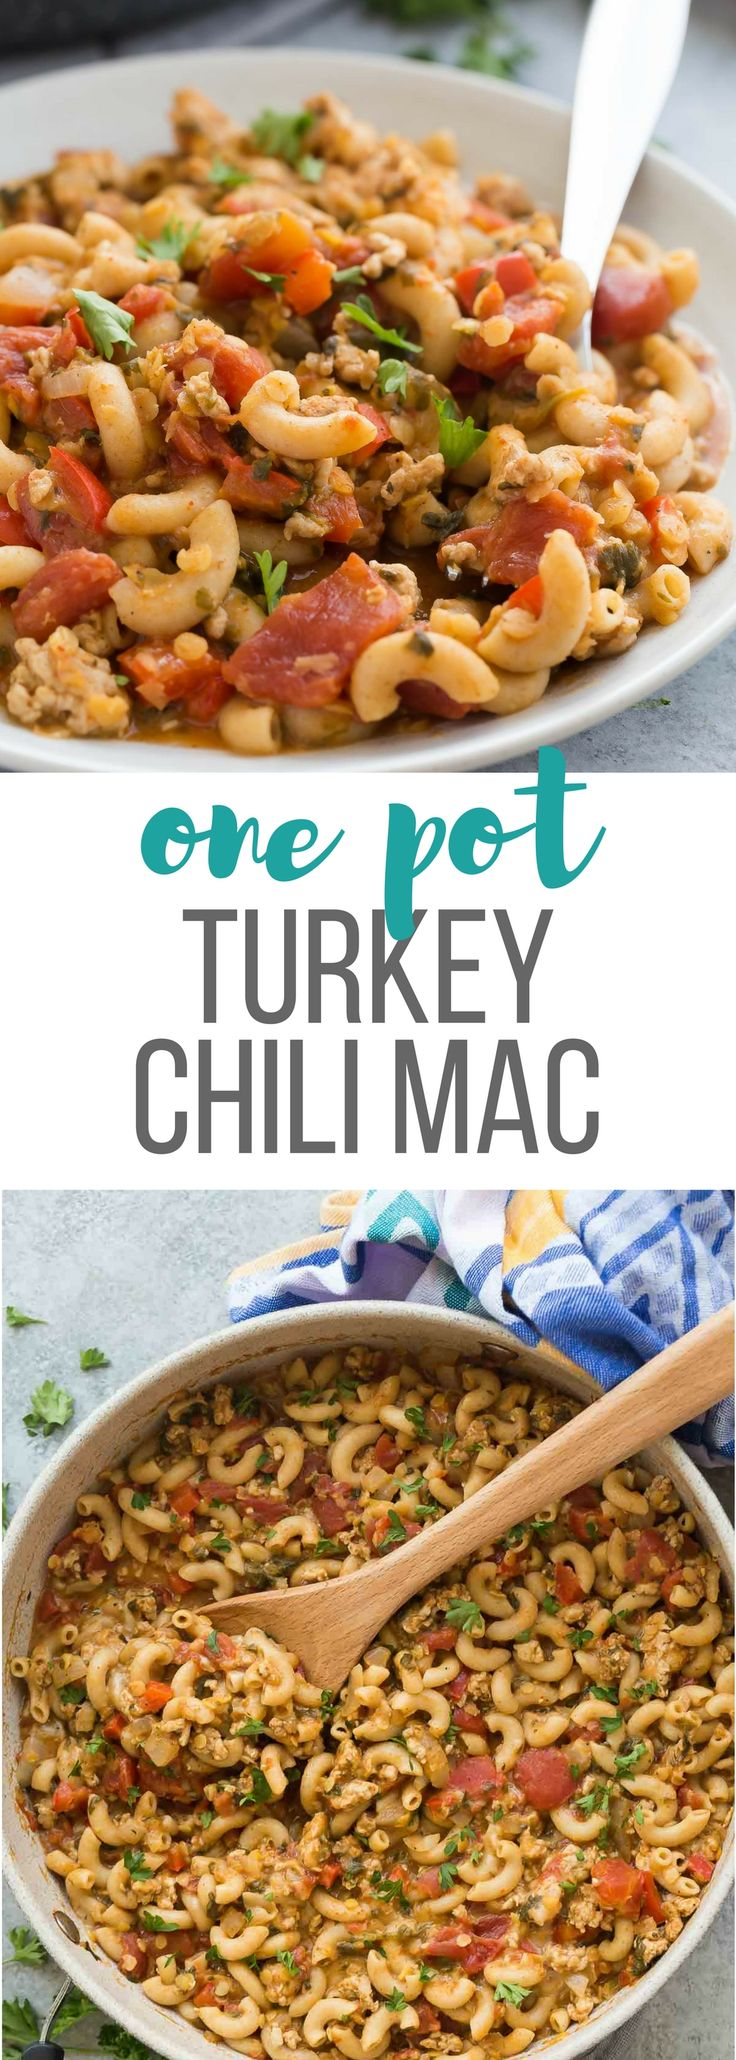 This One Pot Turkey Chili Mac is an easy, healthy weeknight dinner recipe that's made in just one pan! Loaded with vegetables and lentils for extra protein and fibre! Includes step by step recipe video. | one pot meal | one pan | healthy dinner | high pro http://healthyquickly.com